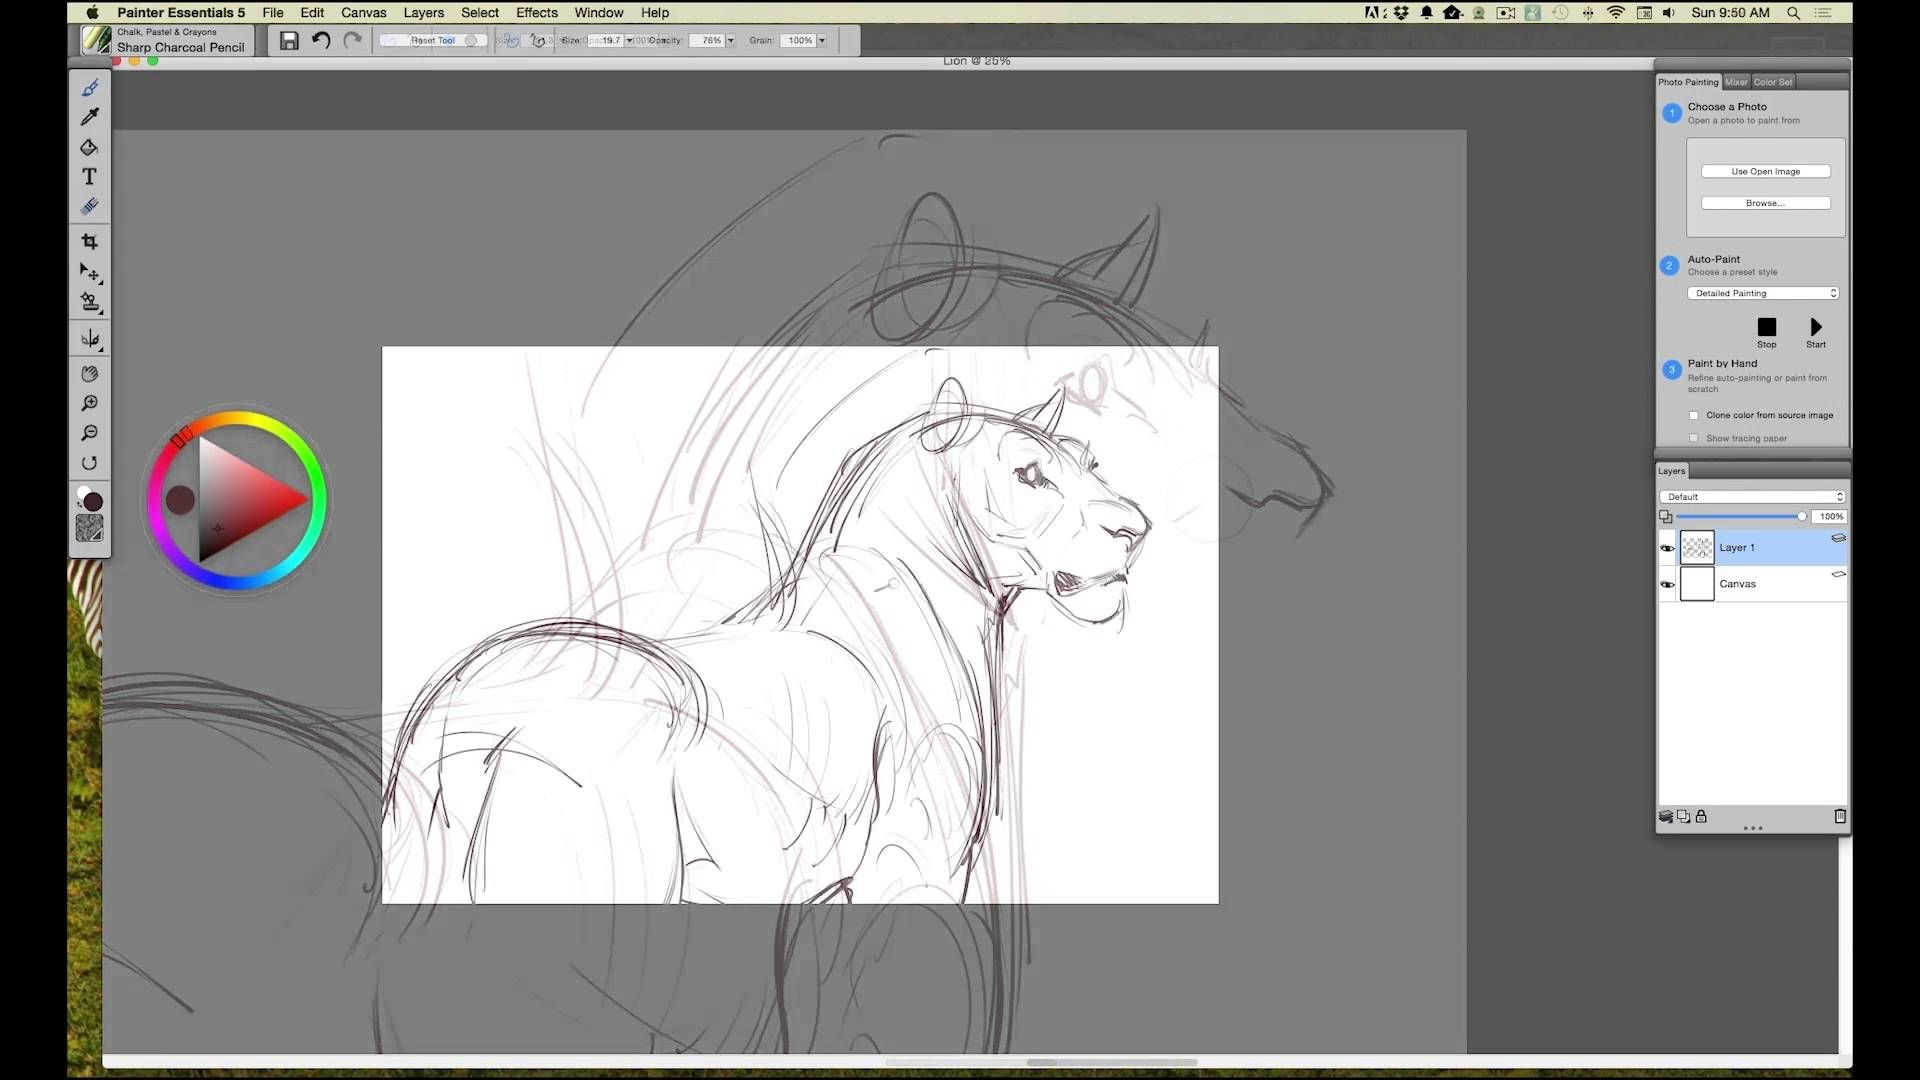 INTUOS ART Rough Drawing in Corel Painter Essentials with